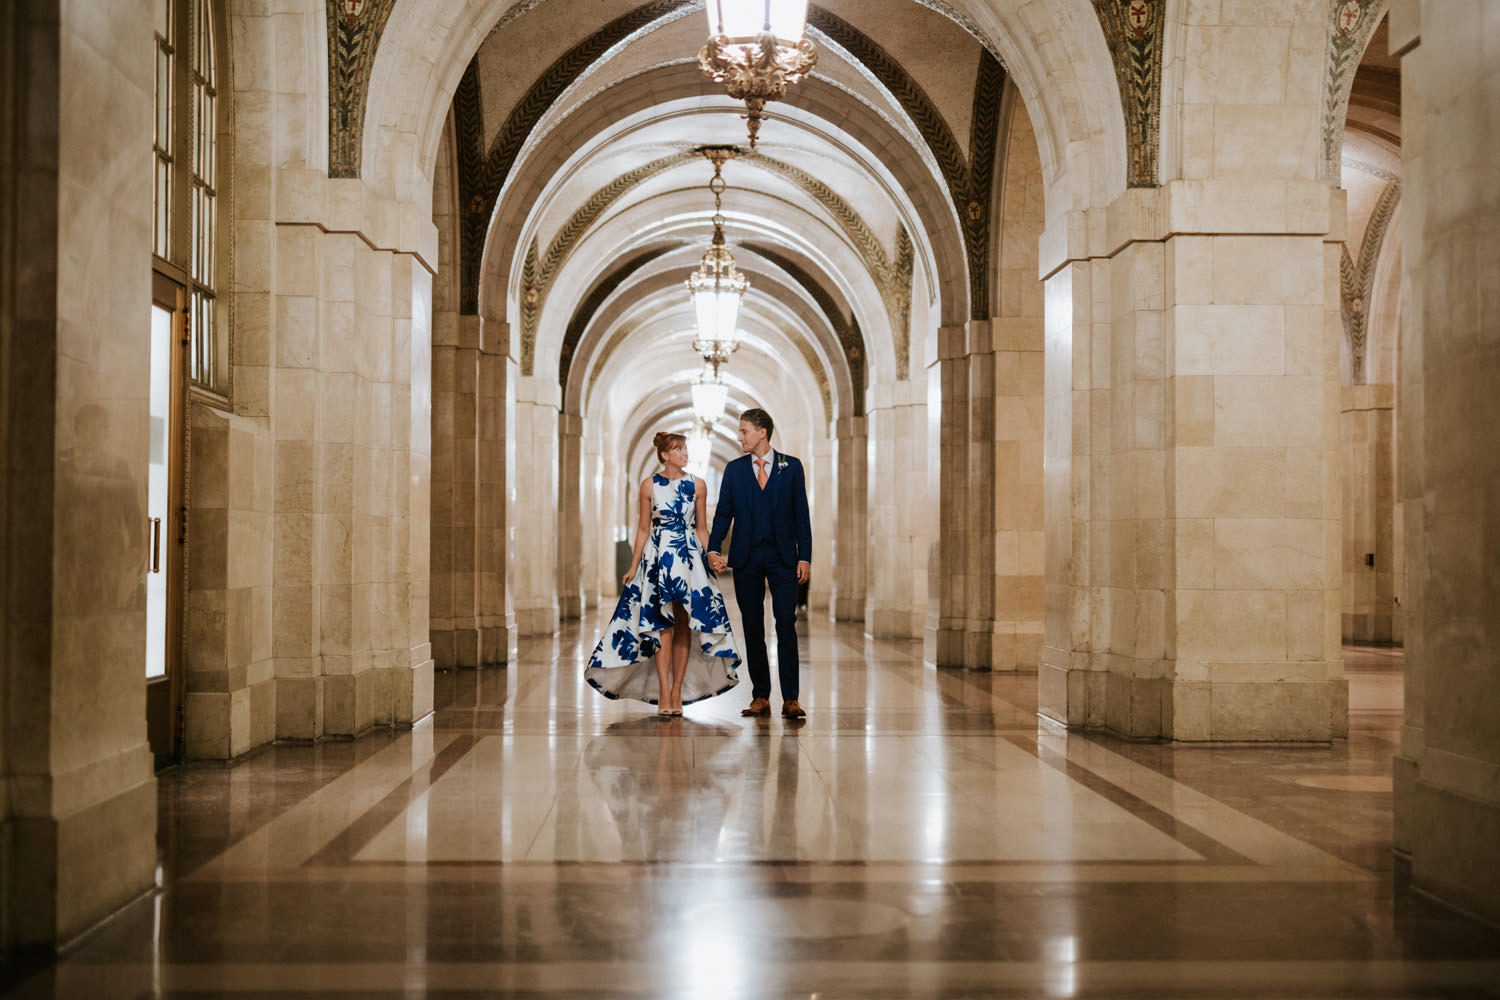 bride the groom walk in the Chicago Civil court during their October Elopement